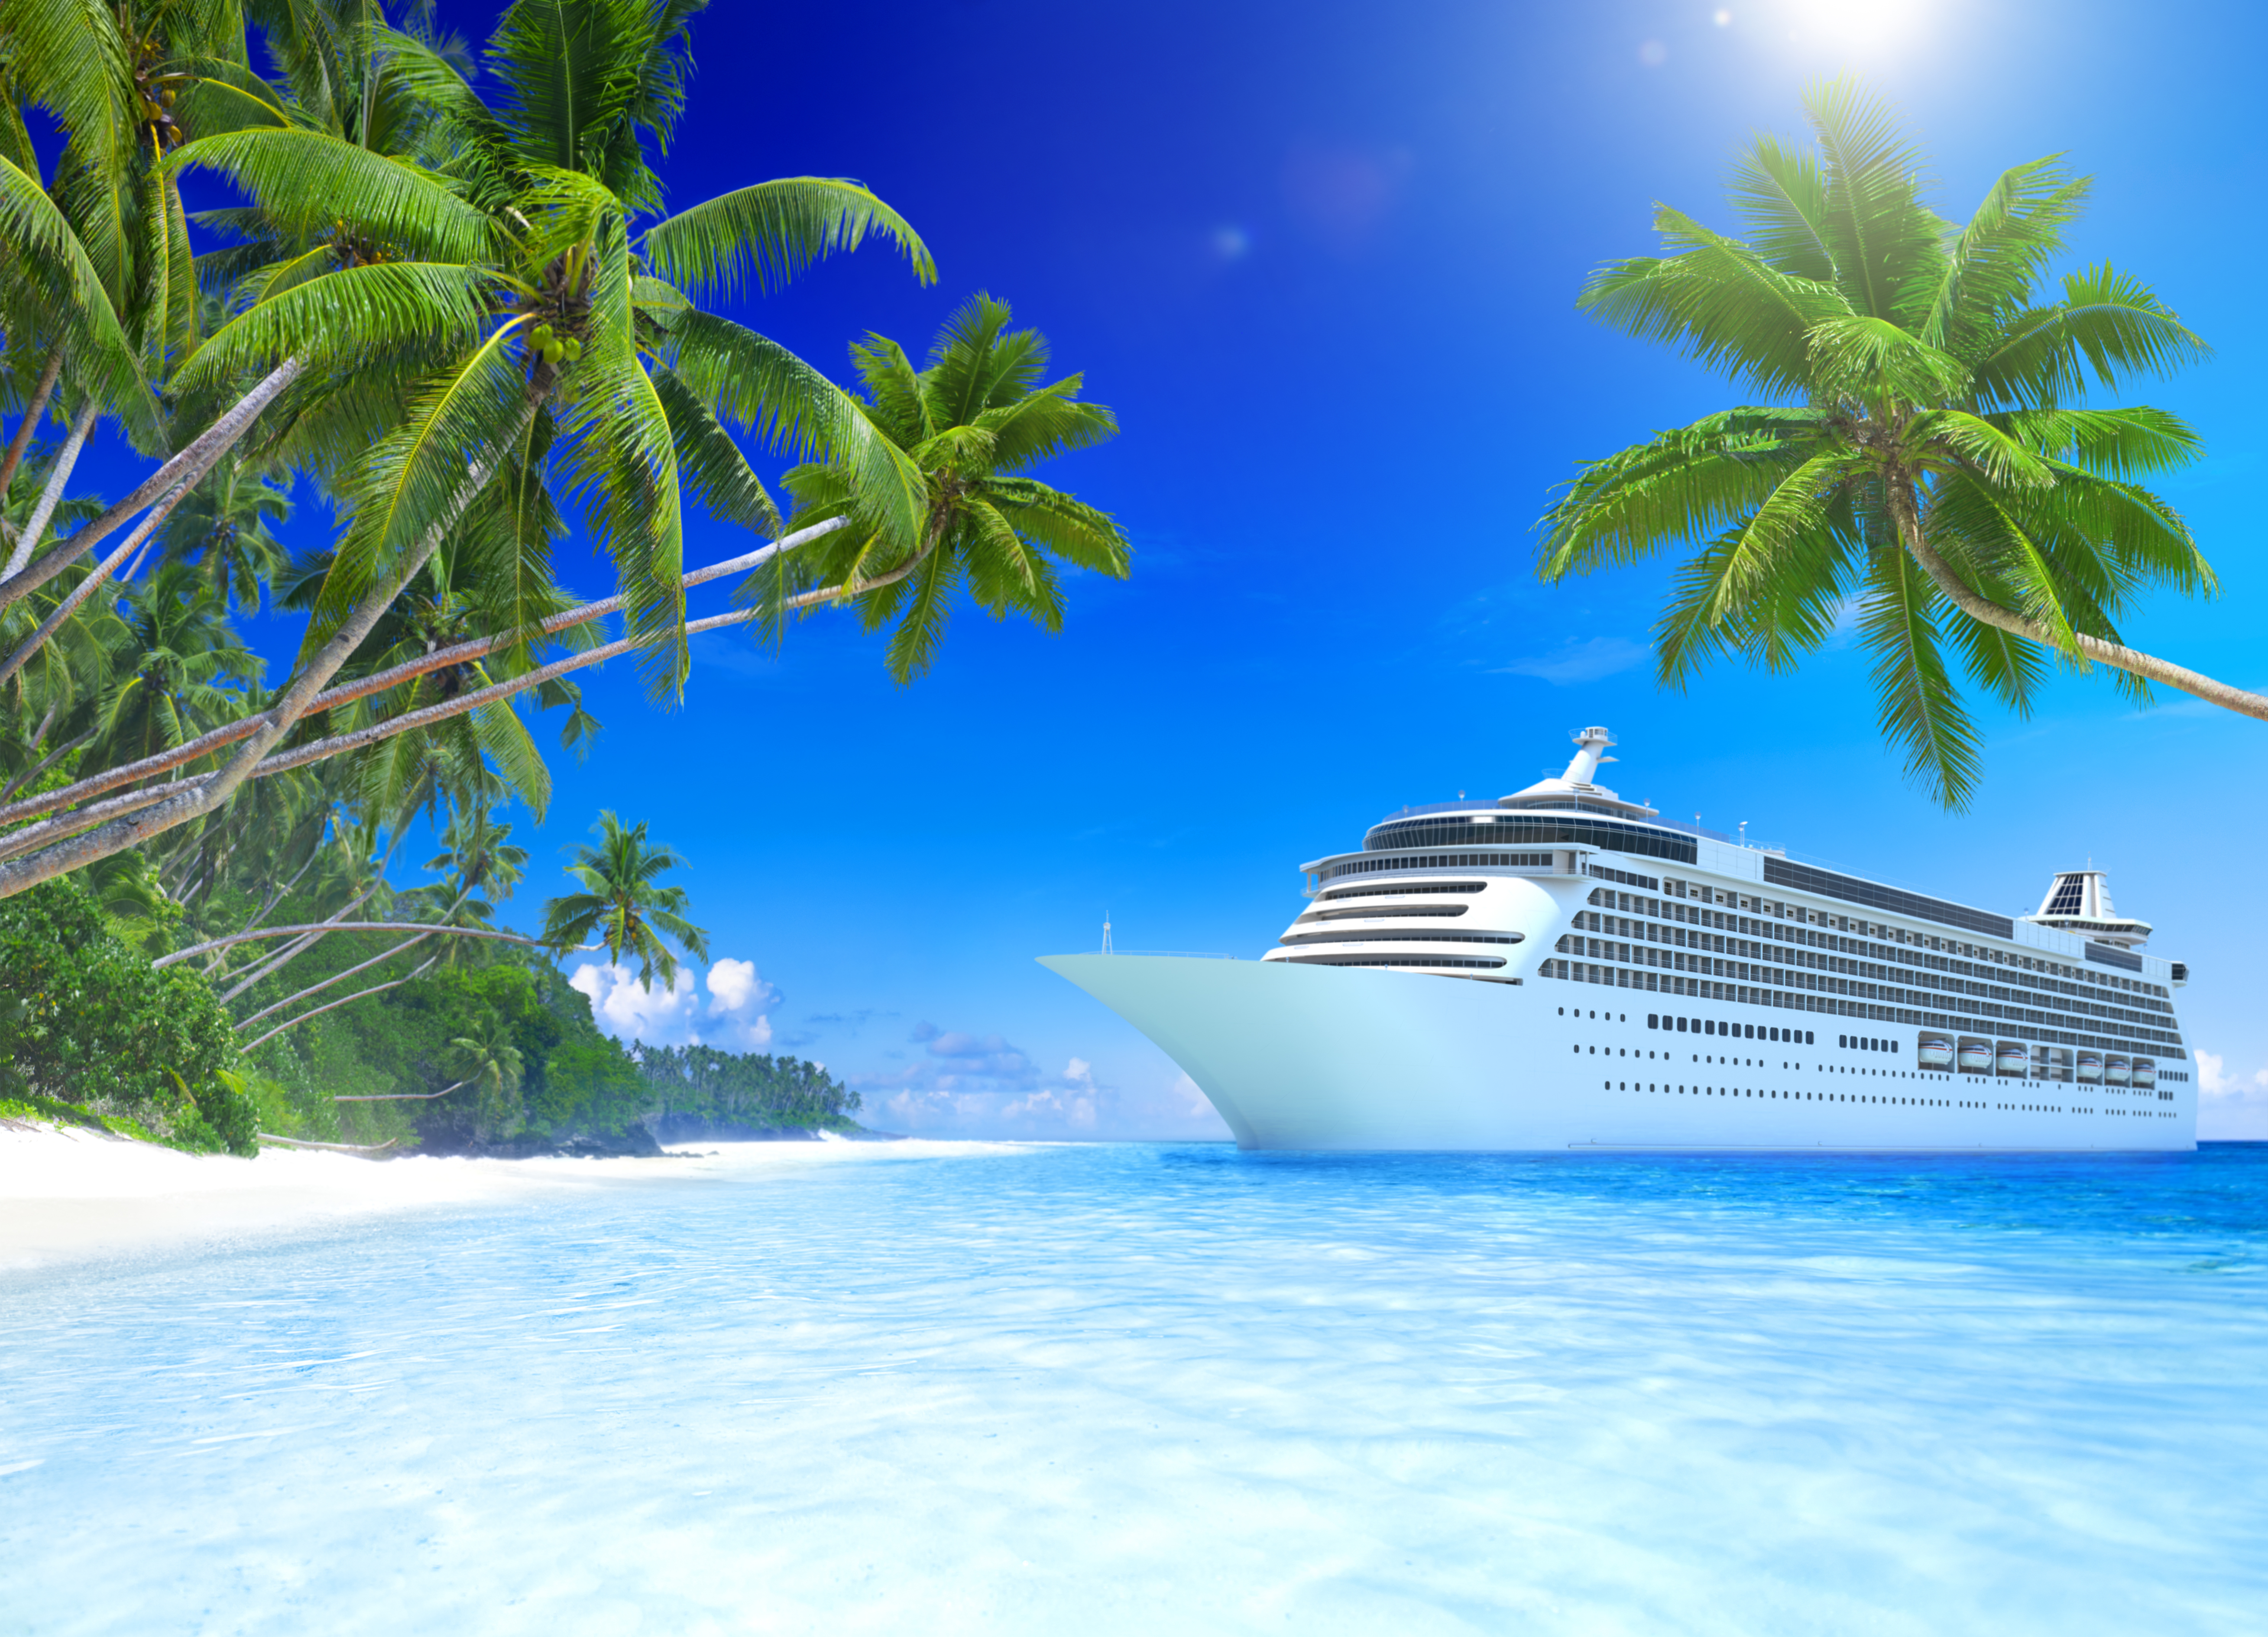 The Truth About Going Overboard On Your Next Cruise